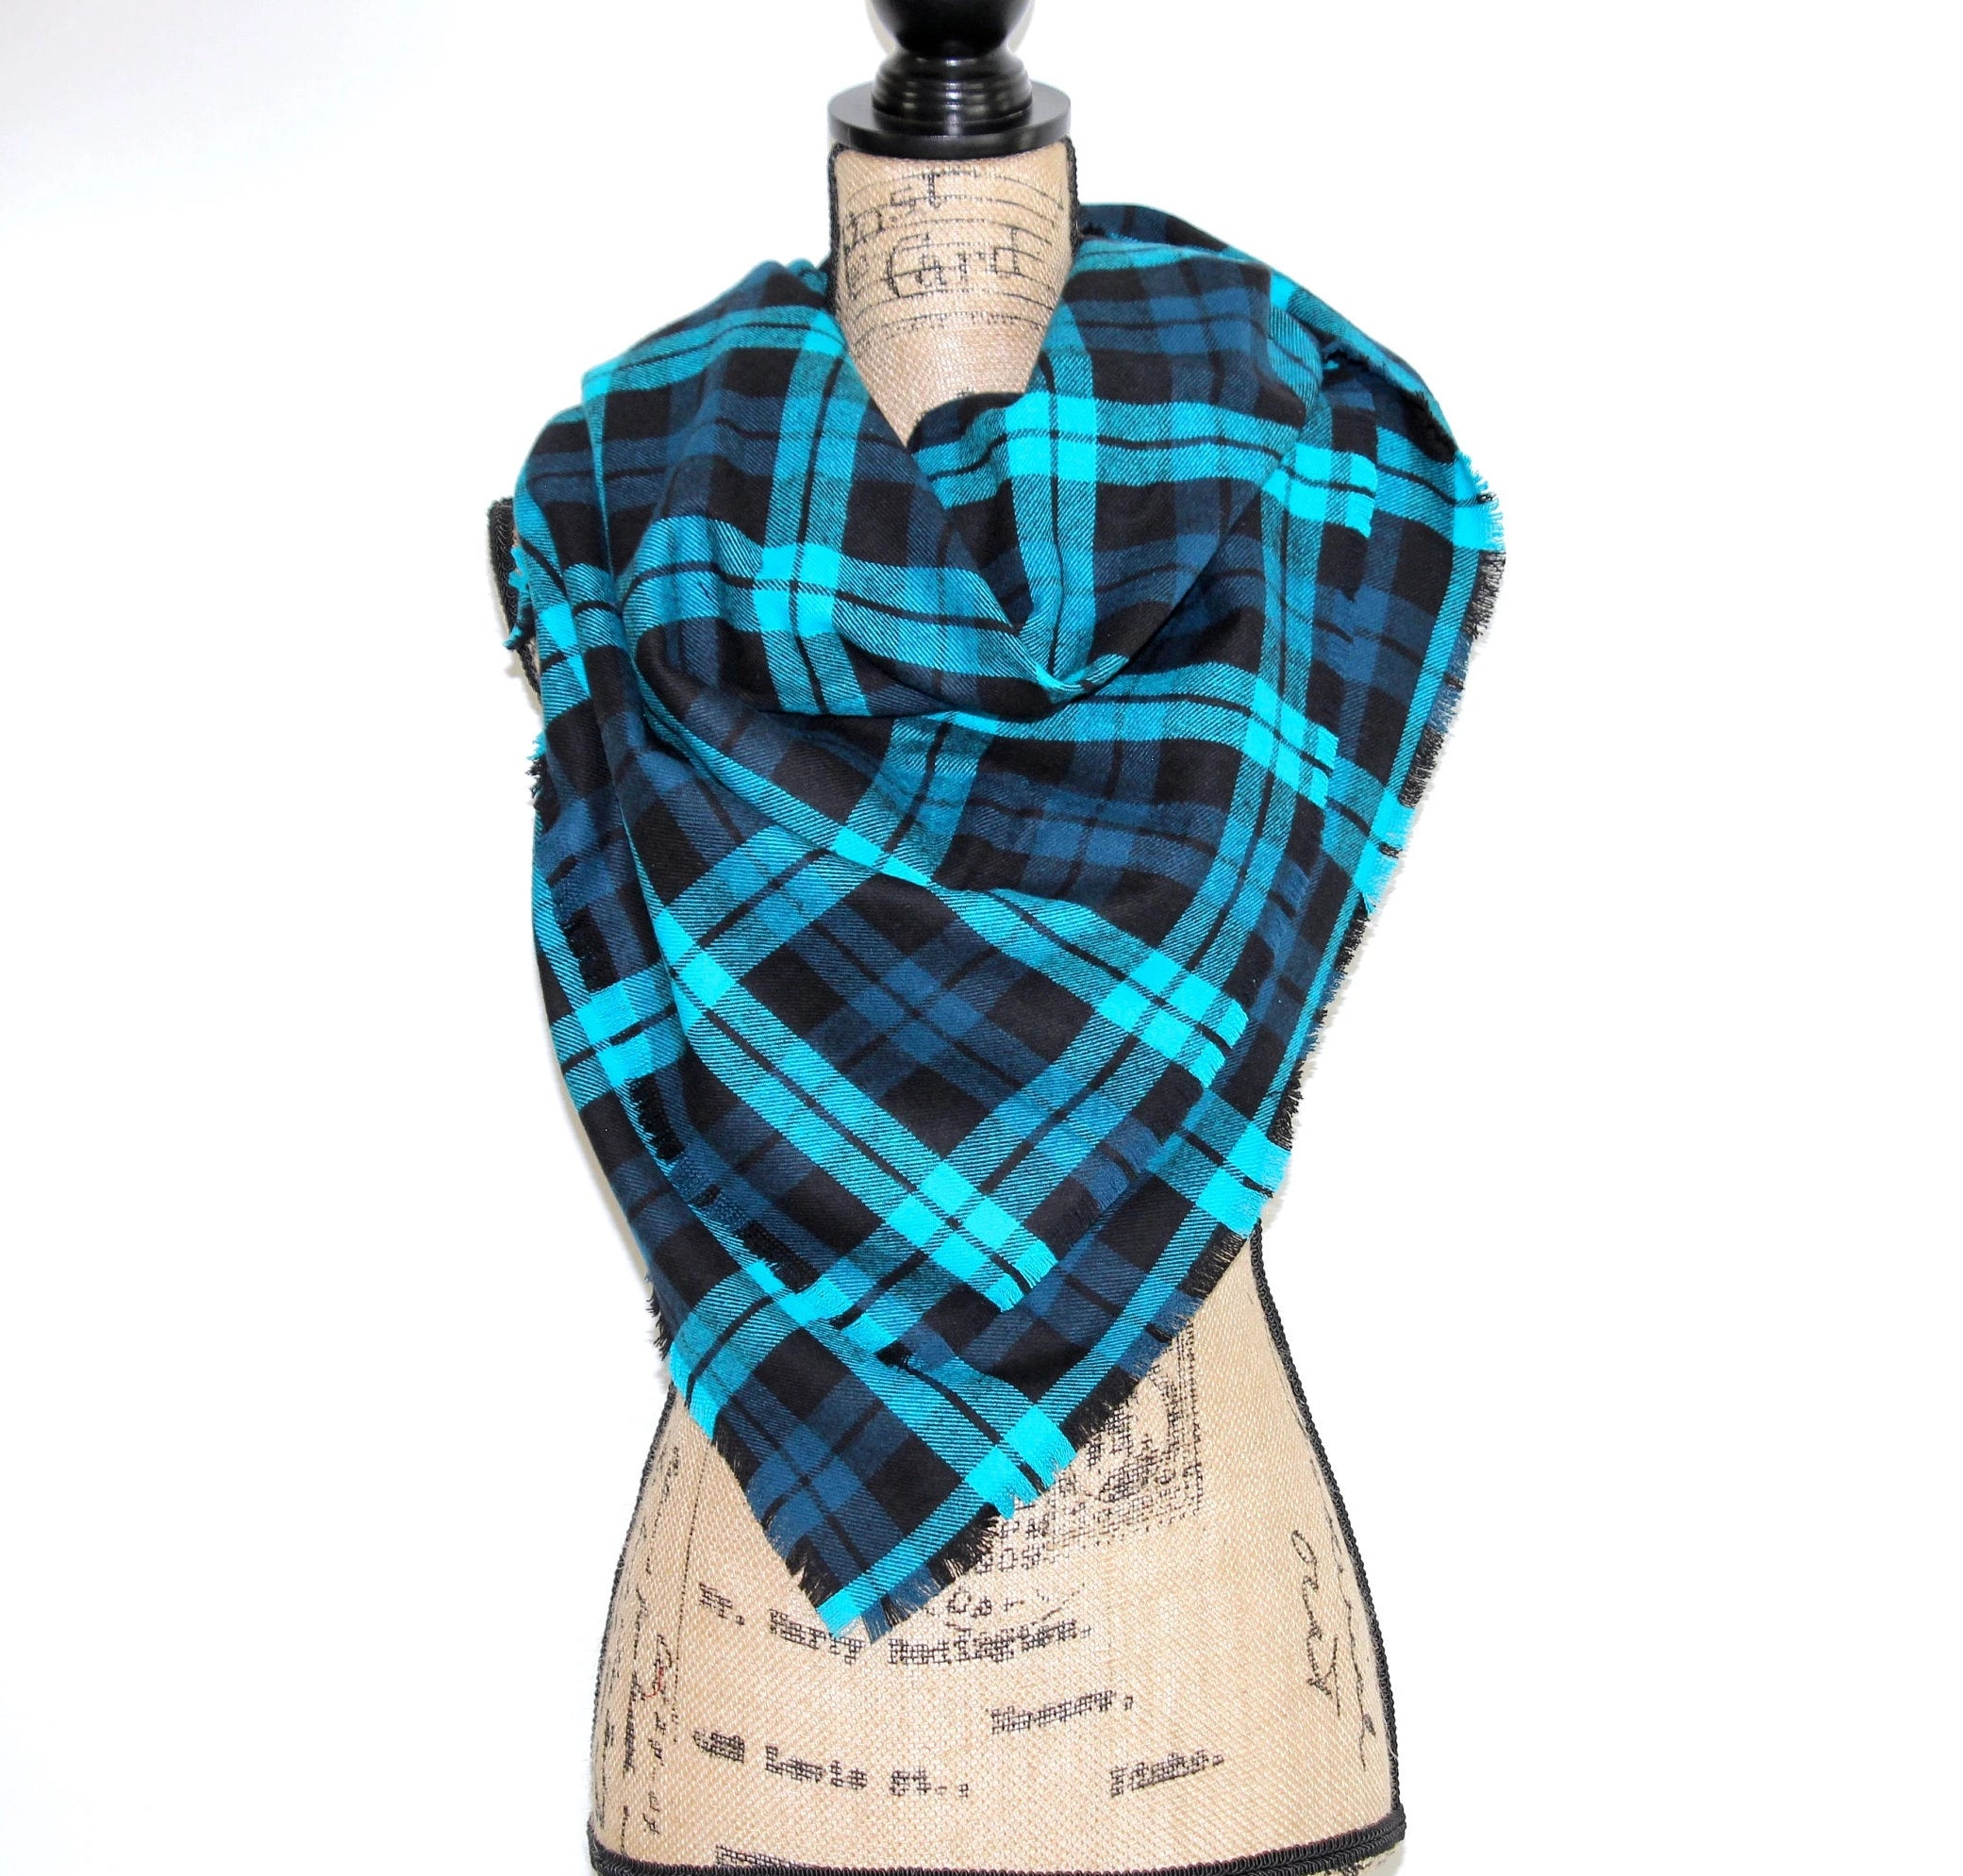 Bright Blue, Navy Blue, Deep Teal, Black Heavyweight Flannel Plaid Infinity or Blanket Scarf